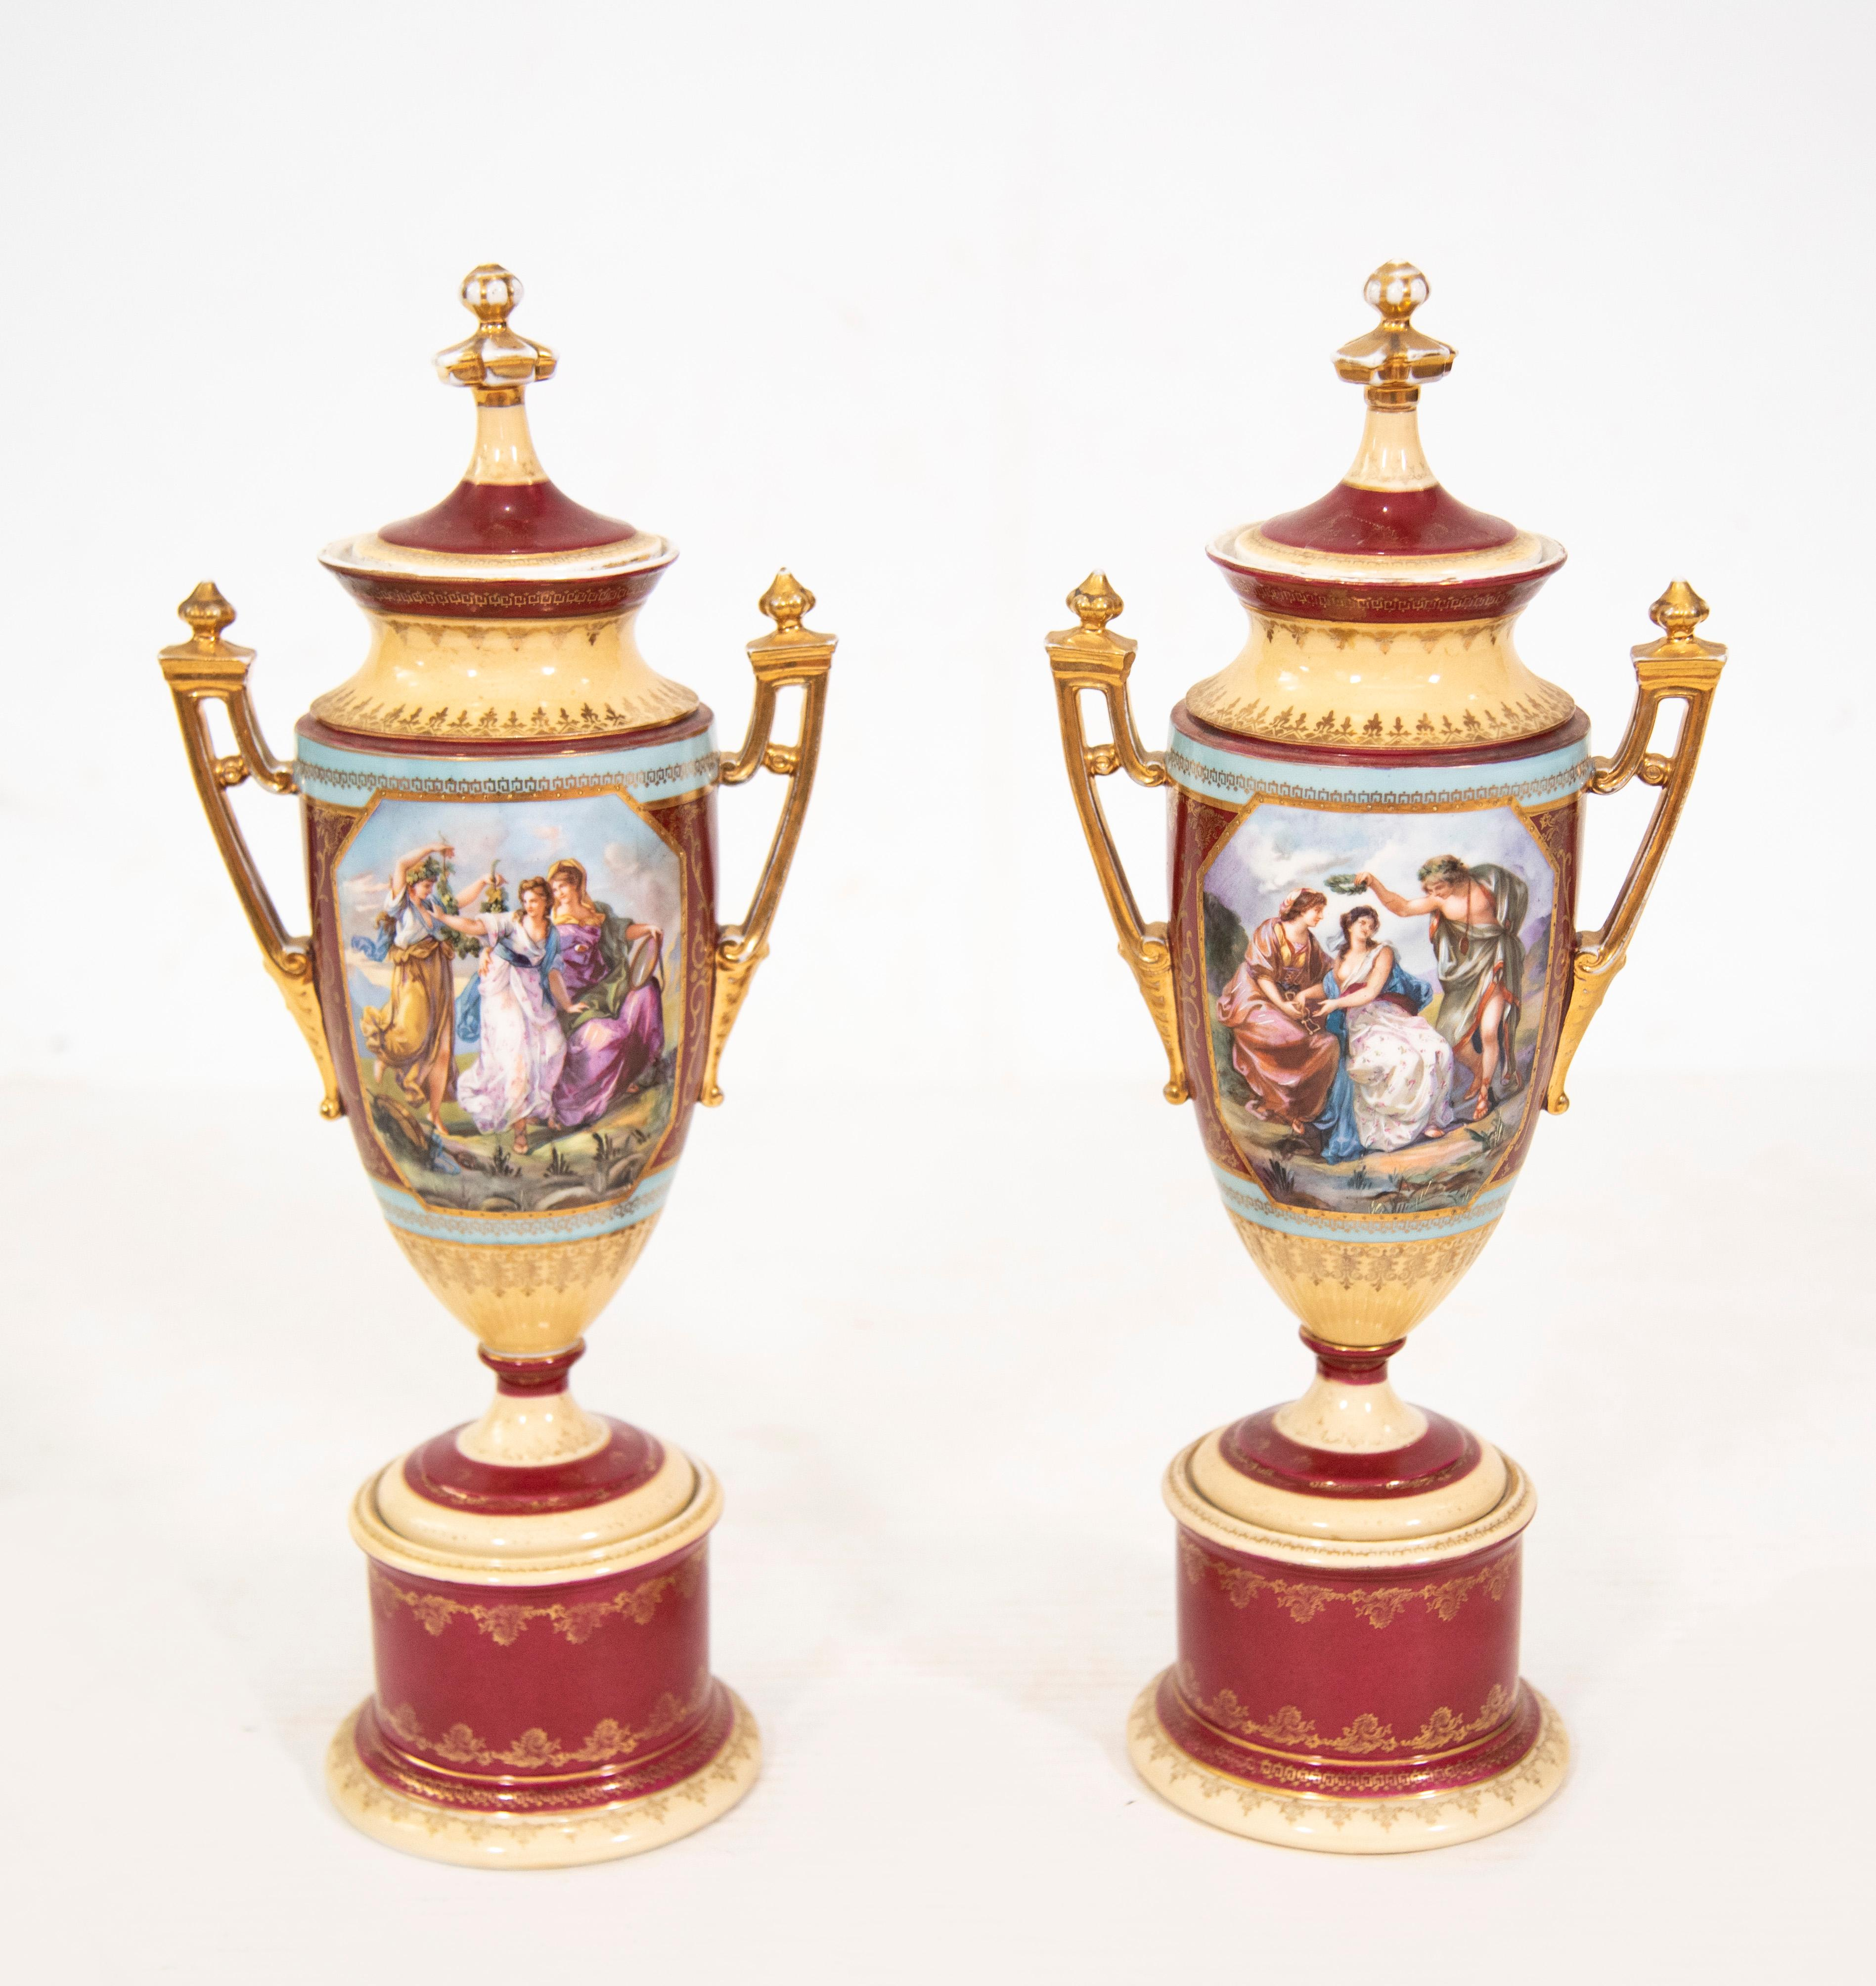 A Pair of Royal Vienna Covered Urns on Bolted Pedestals